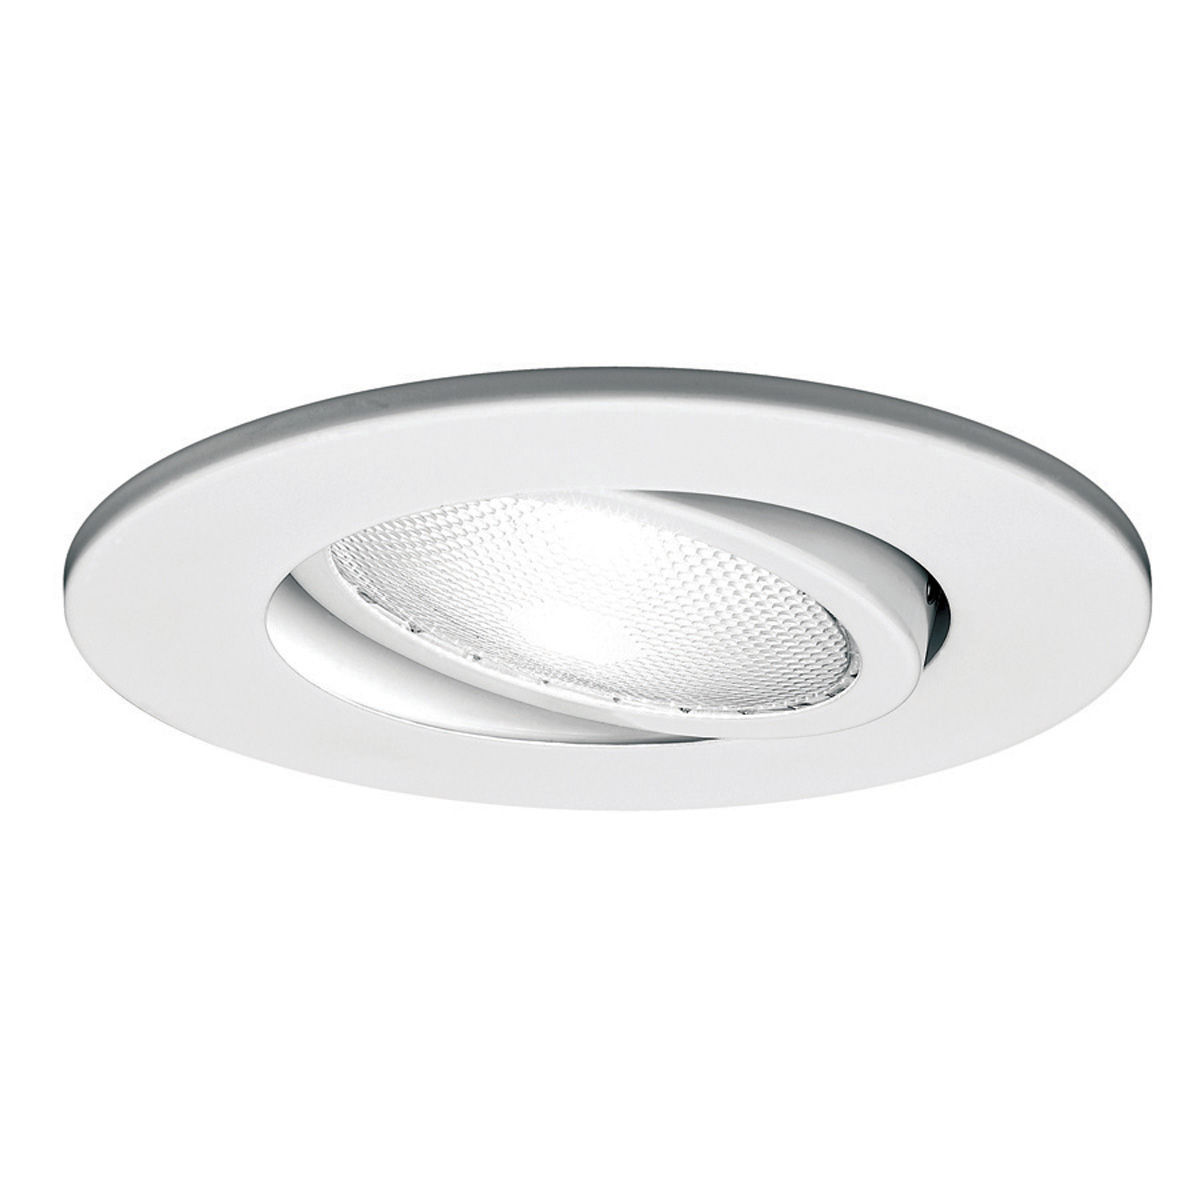 Recessed ceiling spotlight indoor halogen round r 532 recessed ceiling spotlight indoor halogen round aloadofball Images